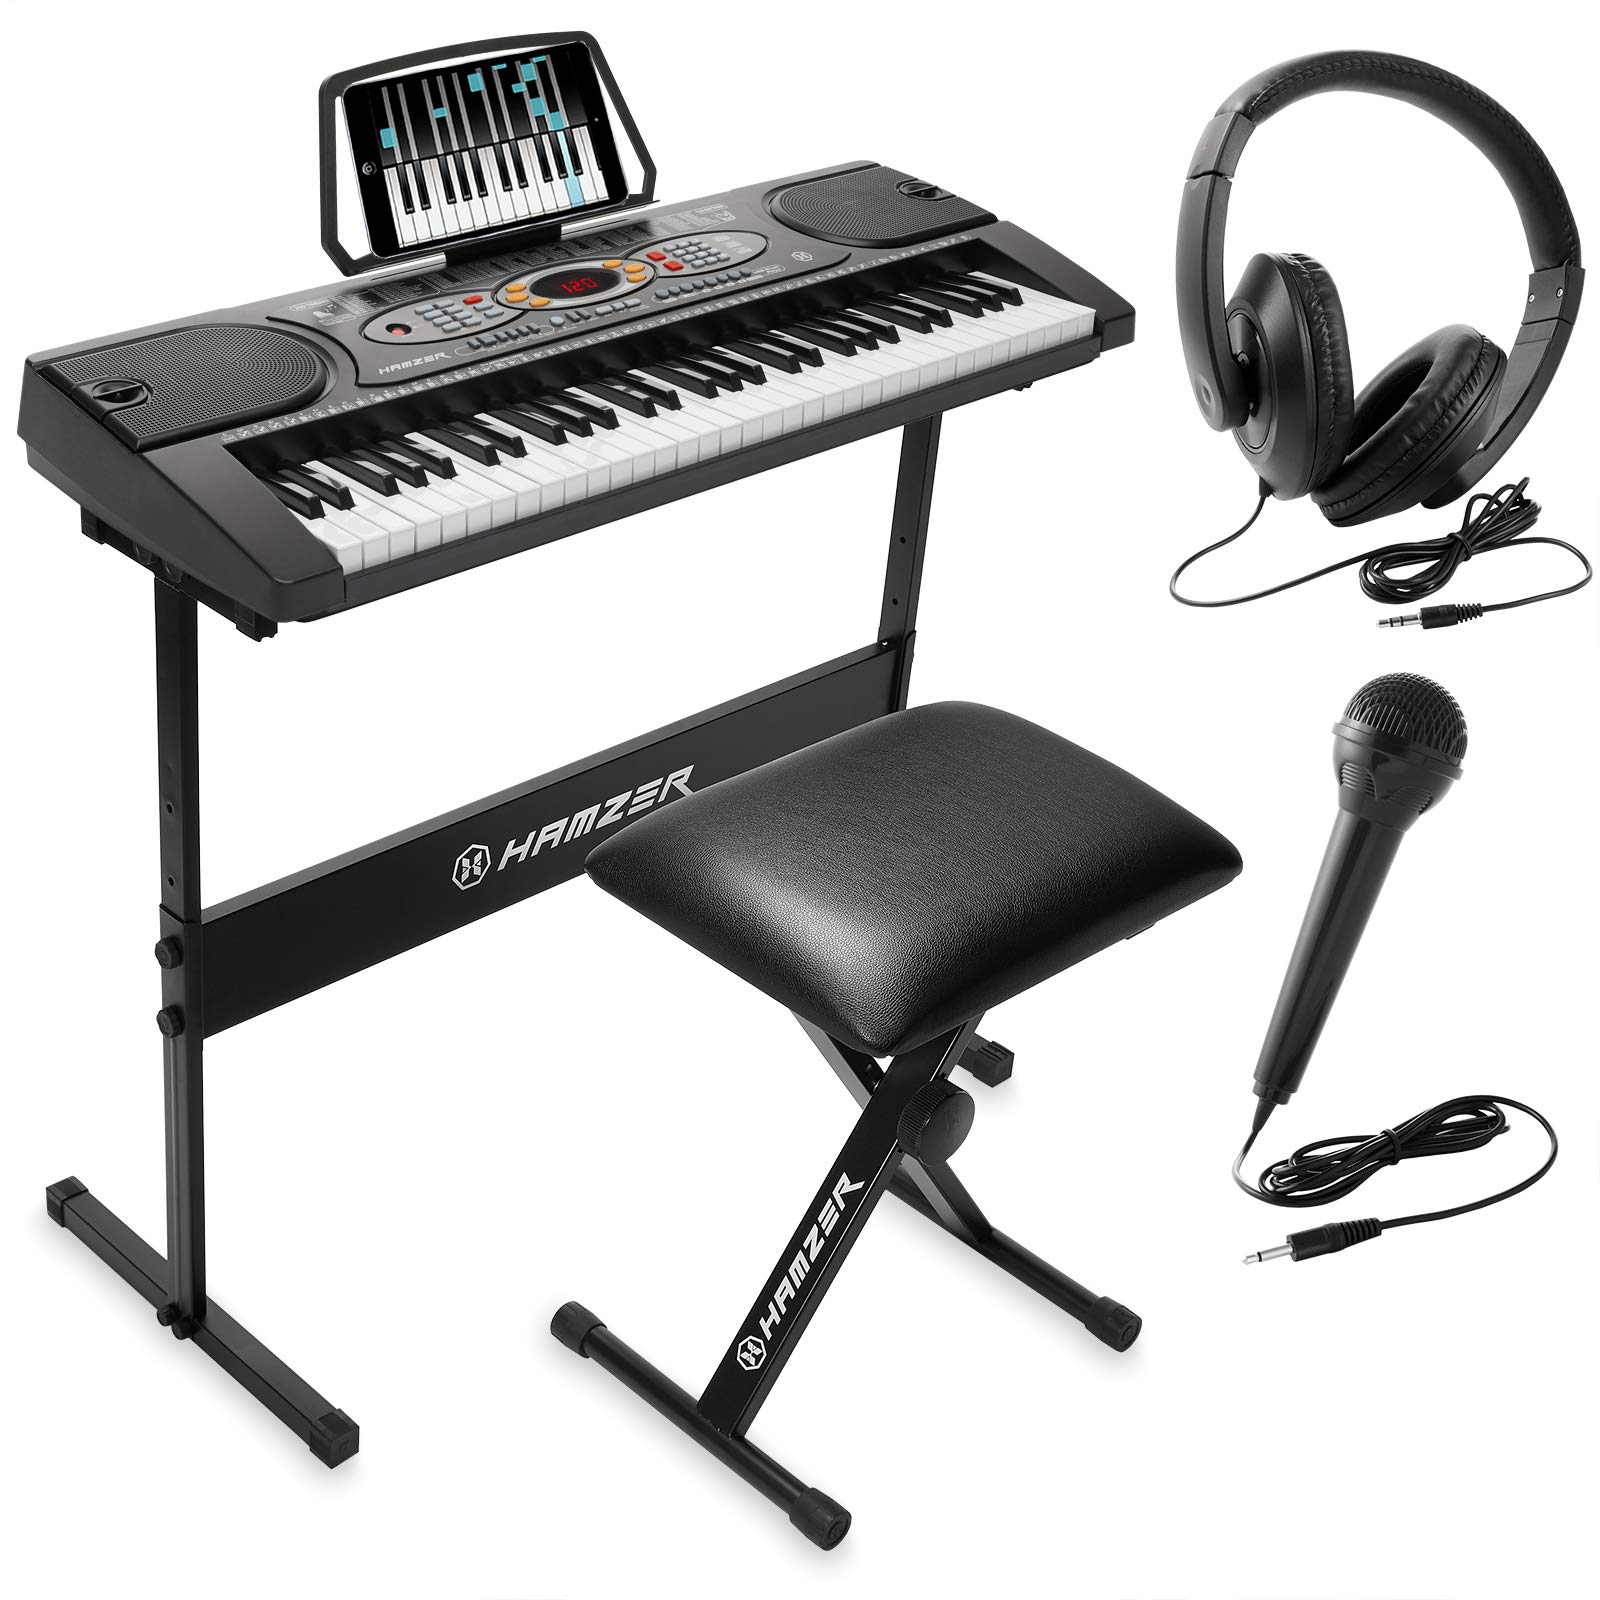 Hamzer 61-Key Electronic Keyboard Portable Digital Music Piano with H Stand, Stool, Headphones Microphone, Sticker Set by Hamzer